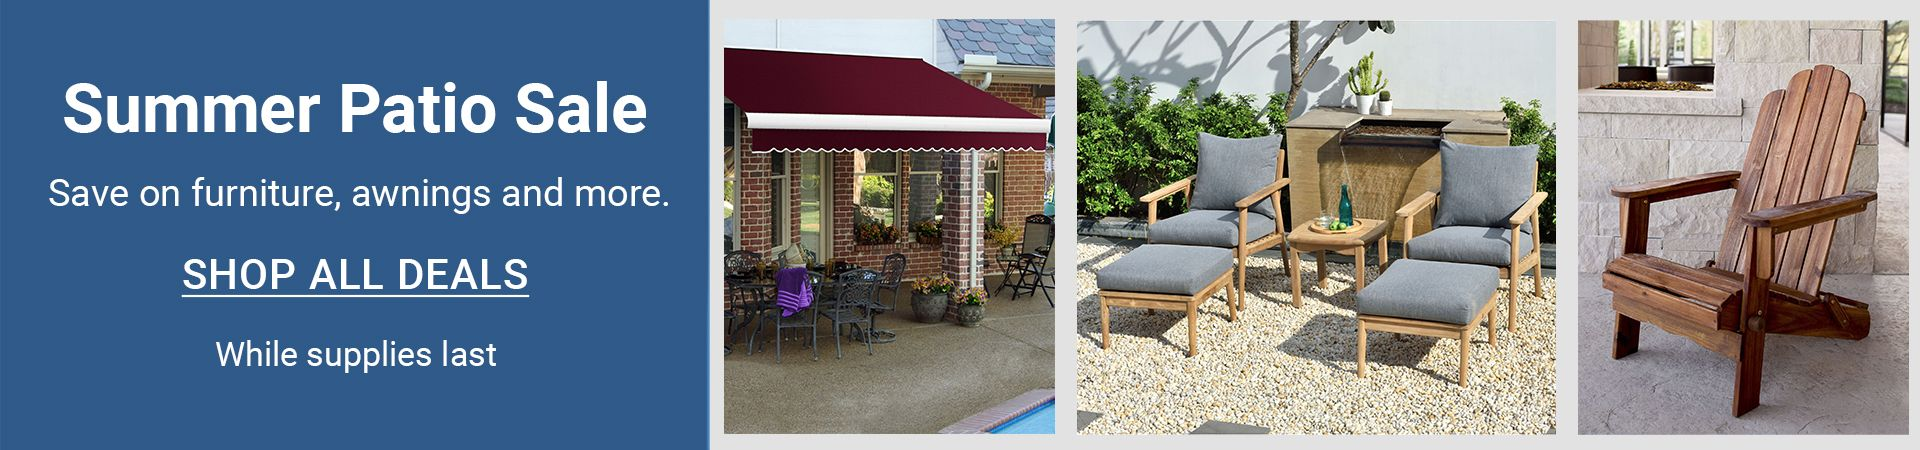 Summer patio sale. Save on furniture, awnings, and more. While supplies last. shop all deals.